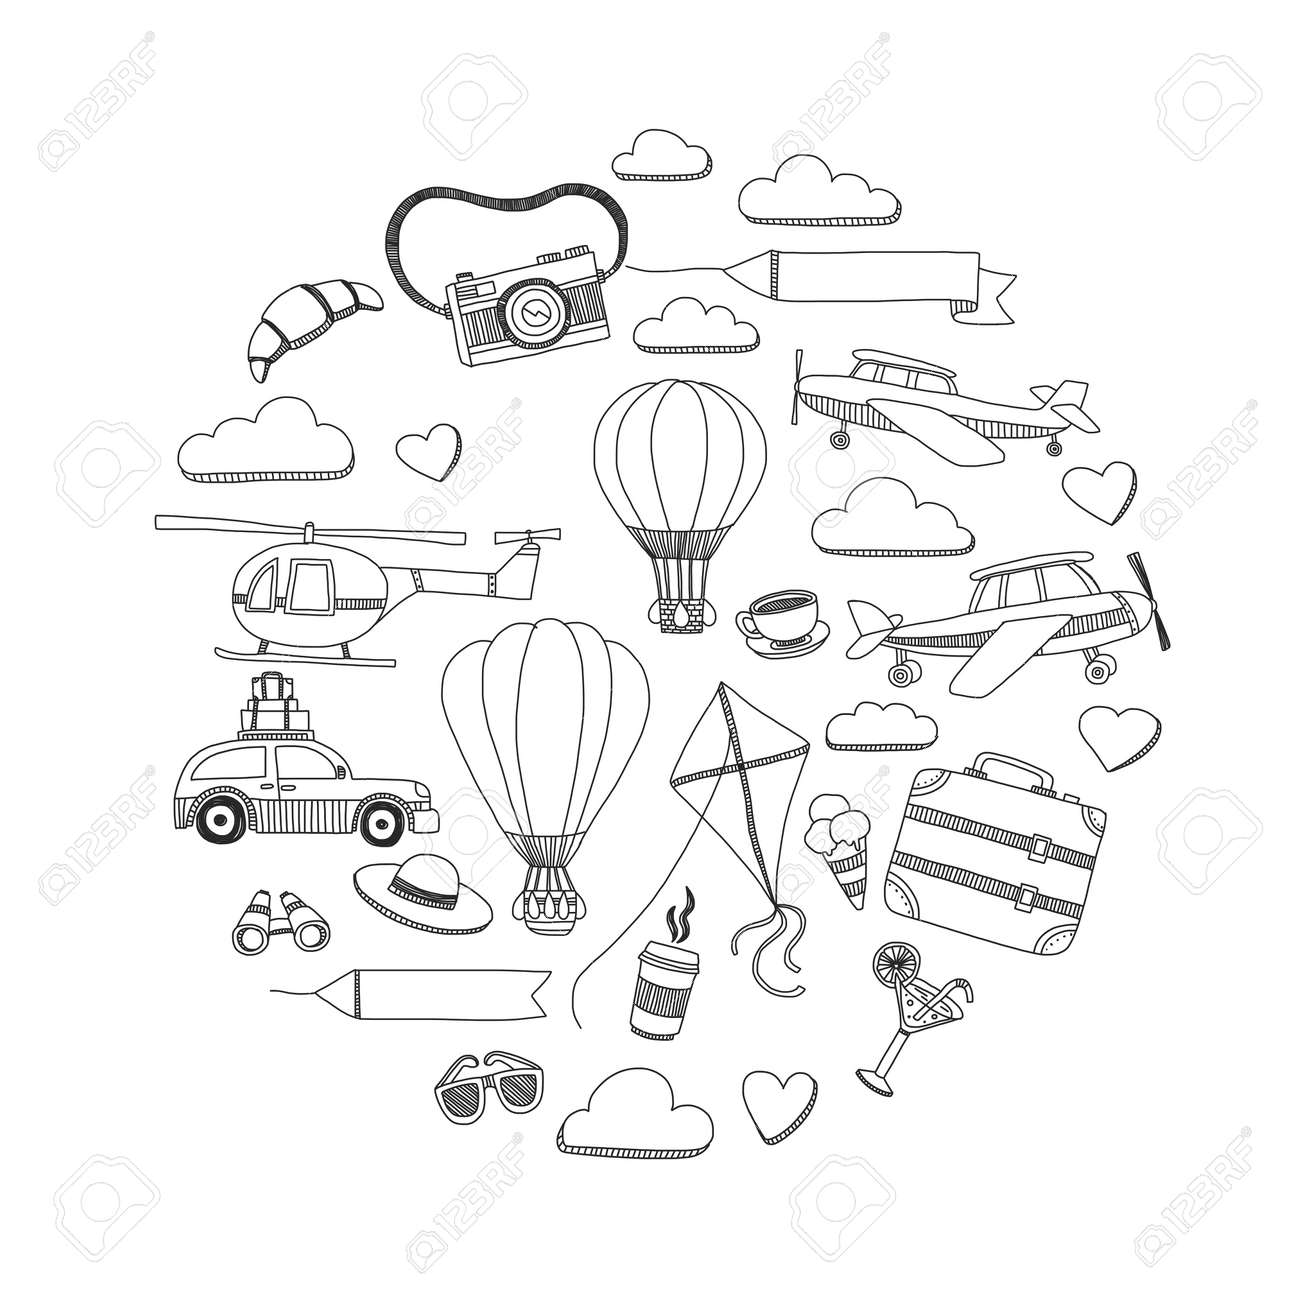 Hand Drawn Doodle Elements Travel And Adventure Kids Drawing Royalty Free Cliparts Vectors And Stock Illustration Image 54248345